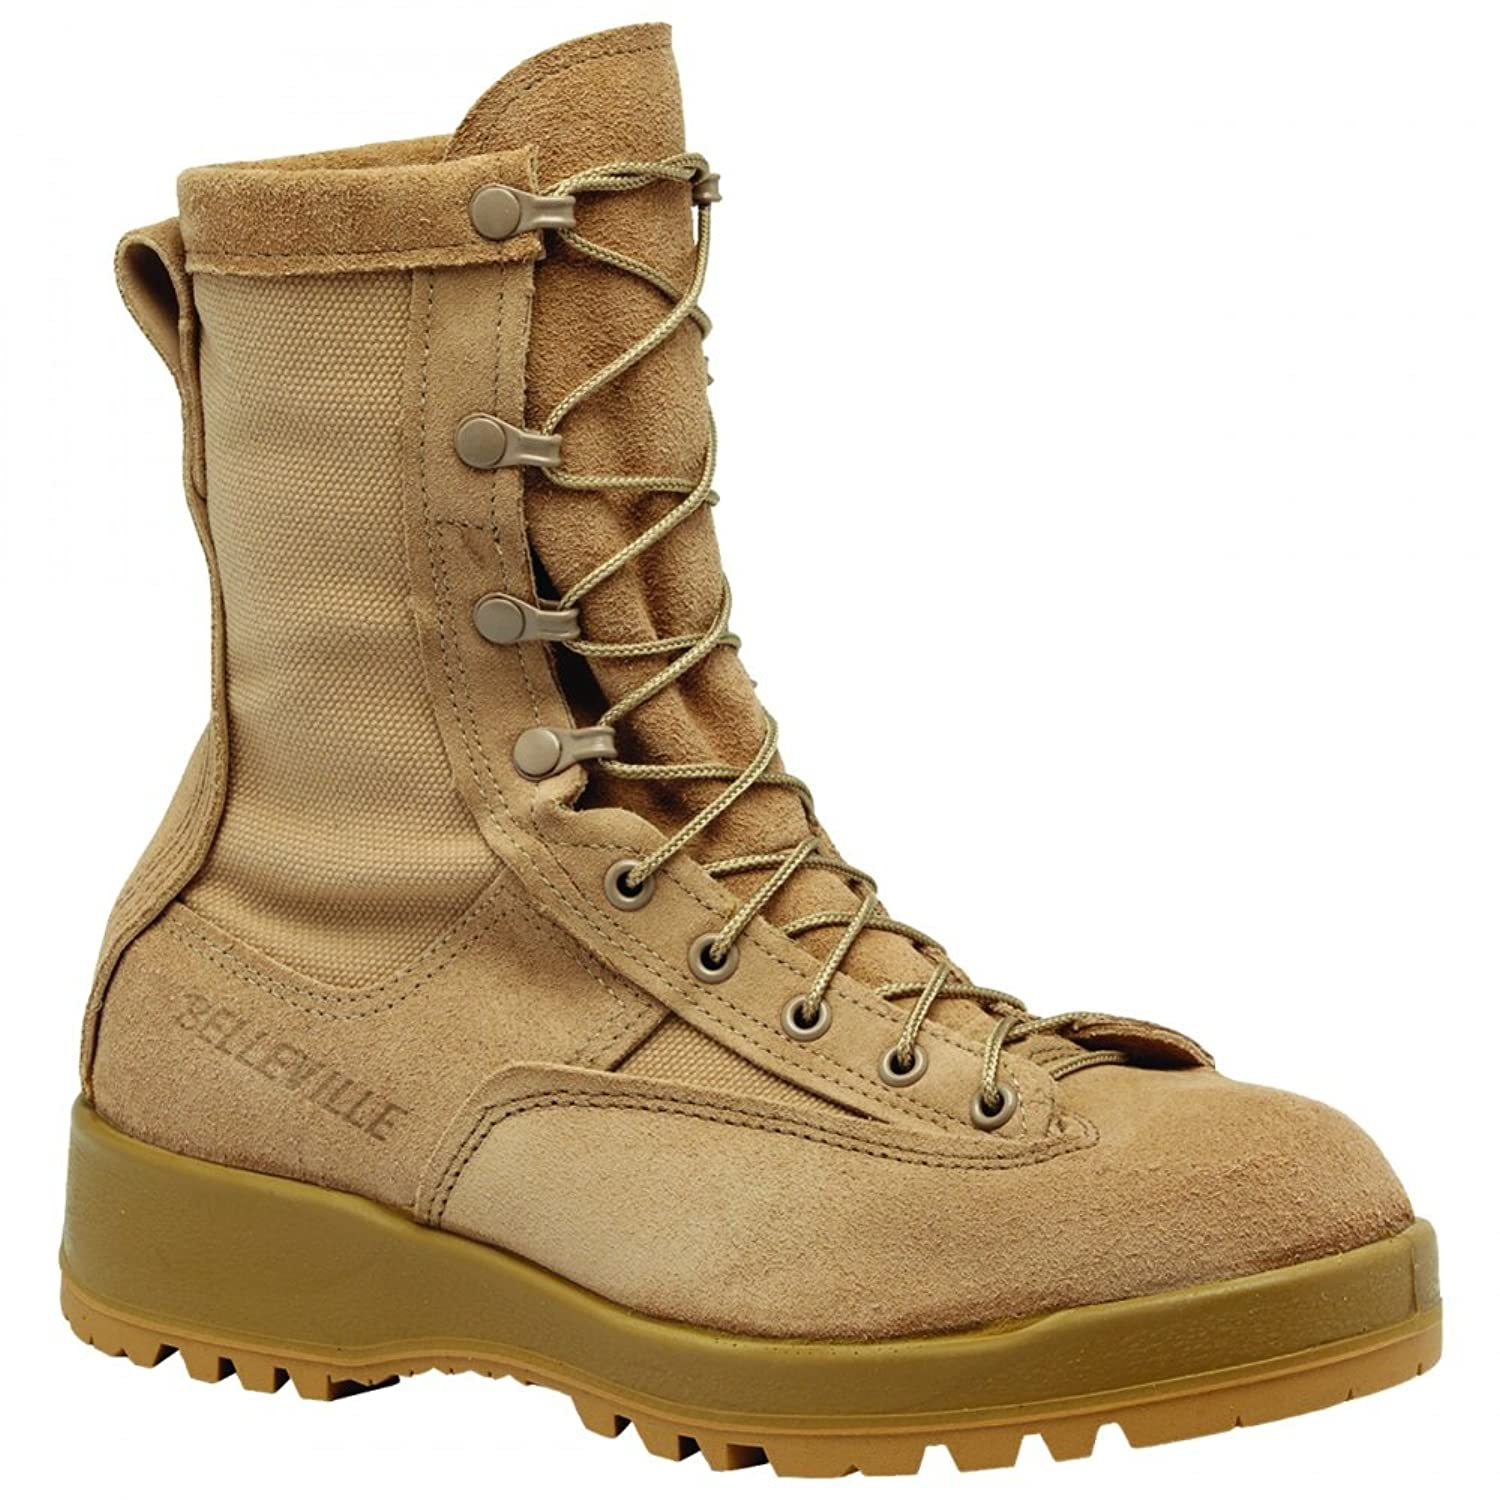 Belleville F795 Women's Waterproof Insulated Combat Boot